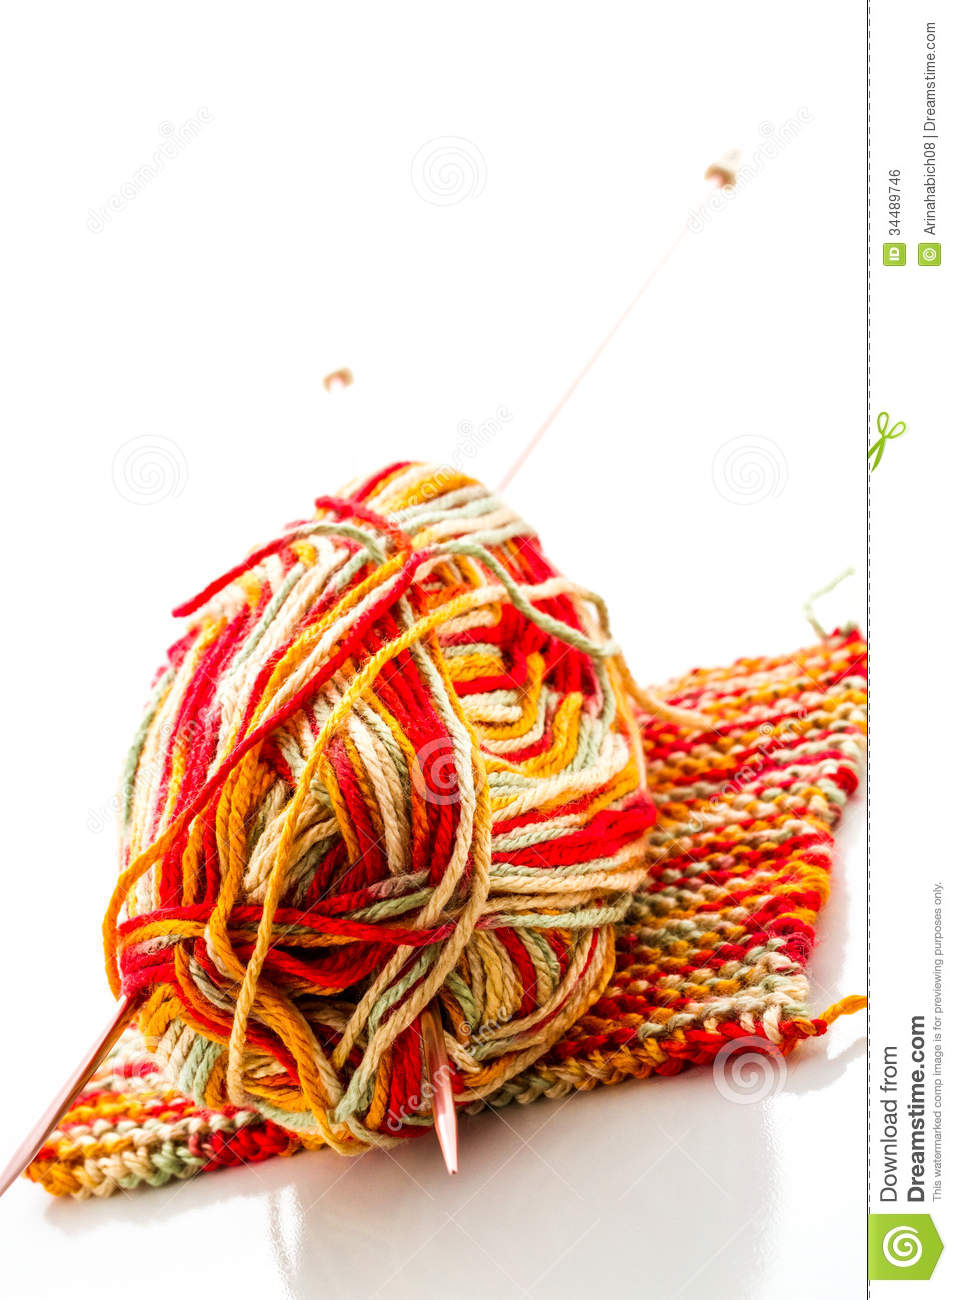 Best Knitting Stitches For Multicolor Yarn : Knitting Royalty Free Stock Image - Image: 34489746